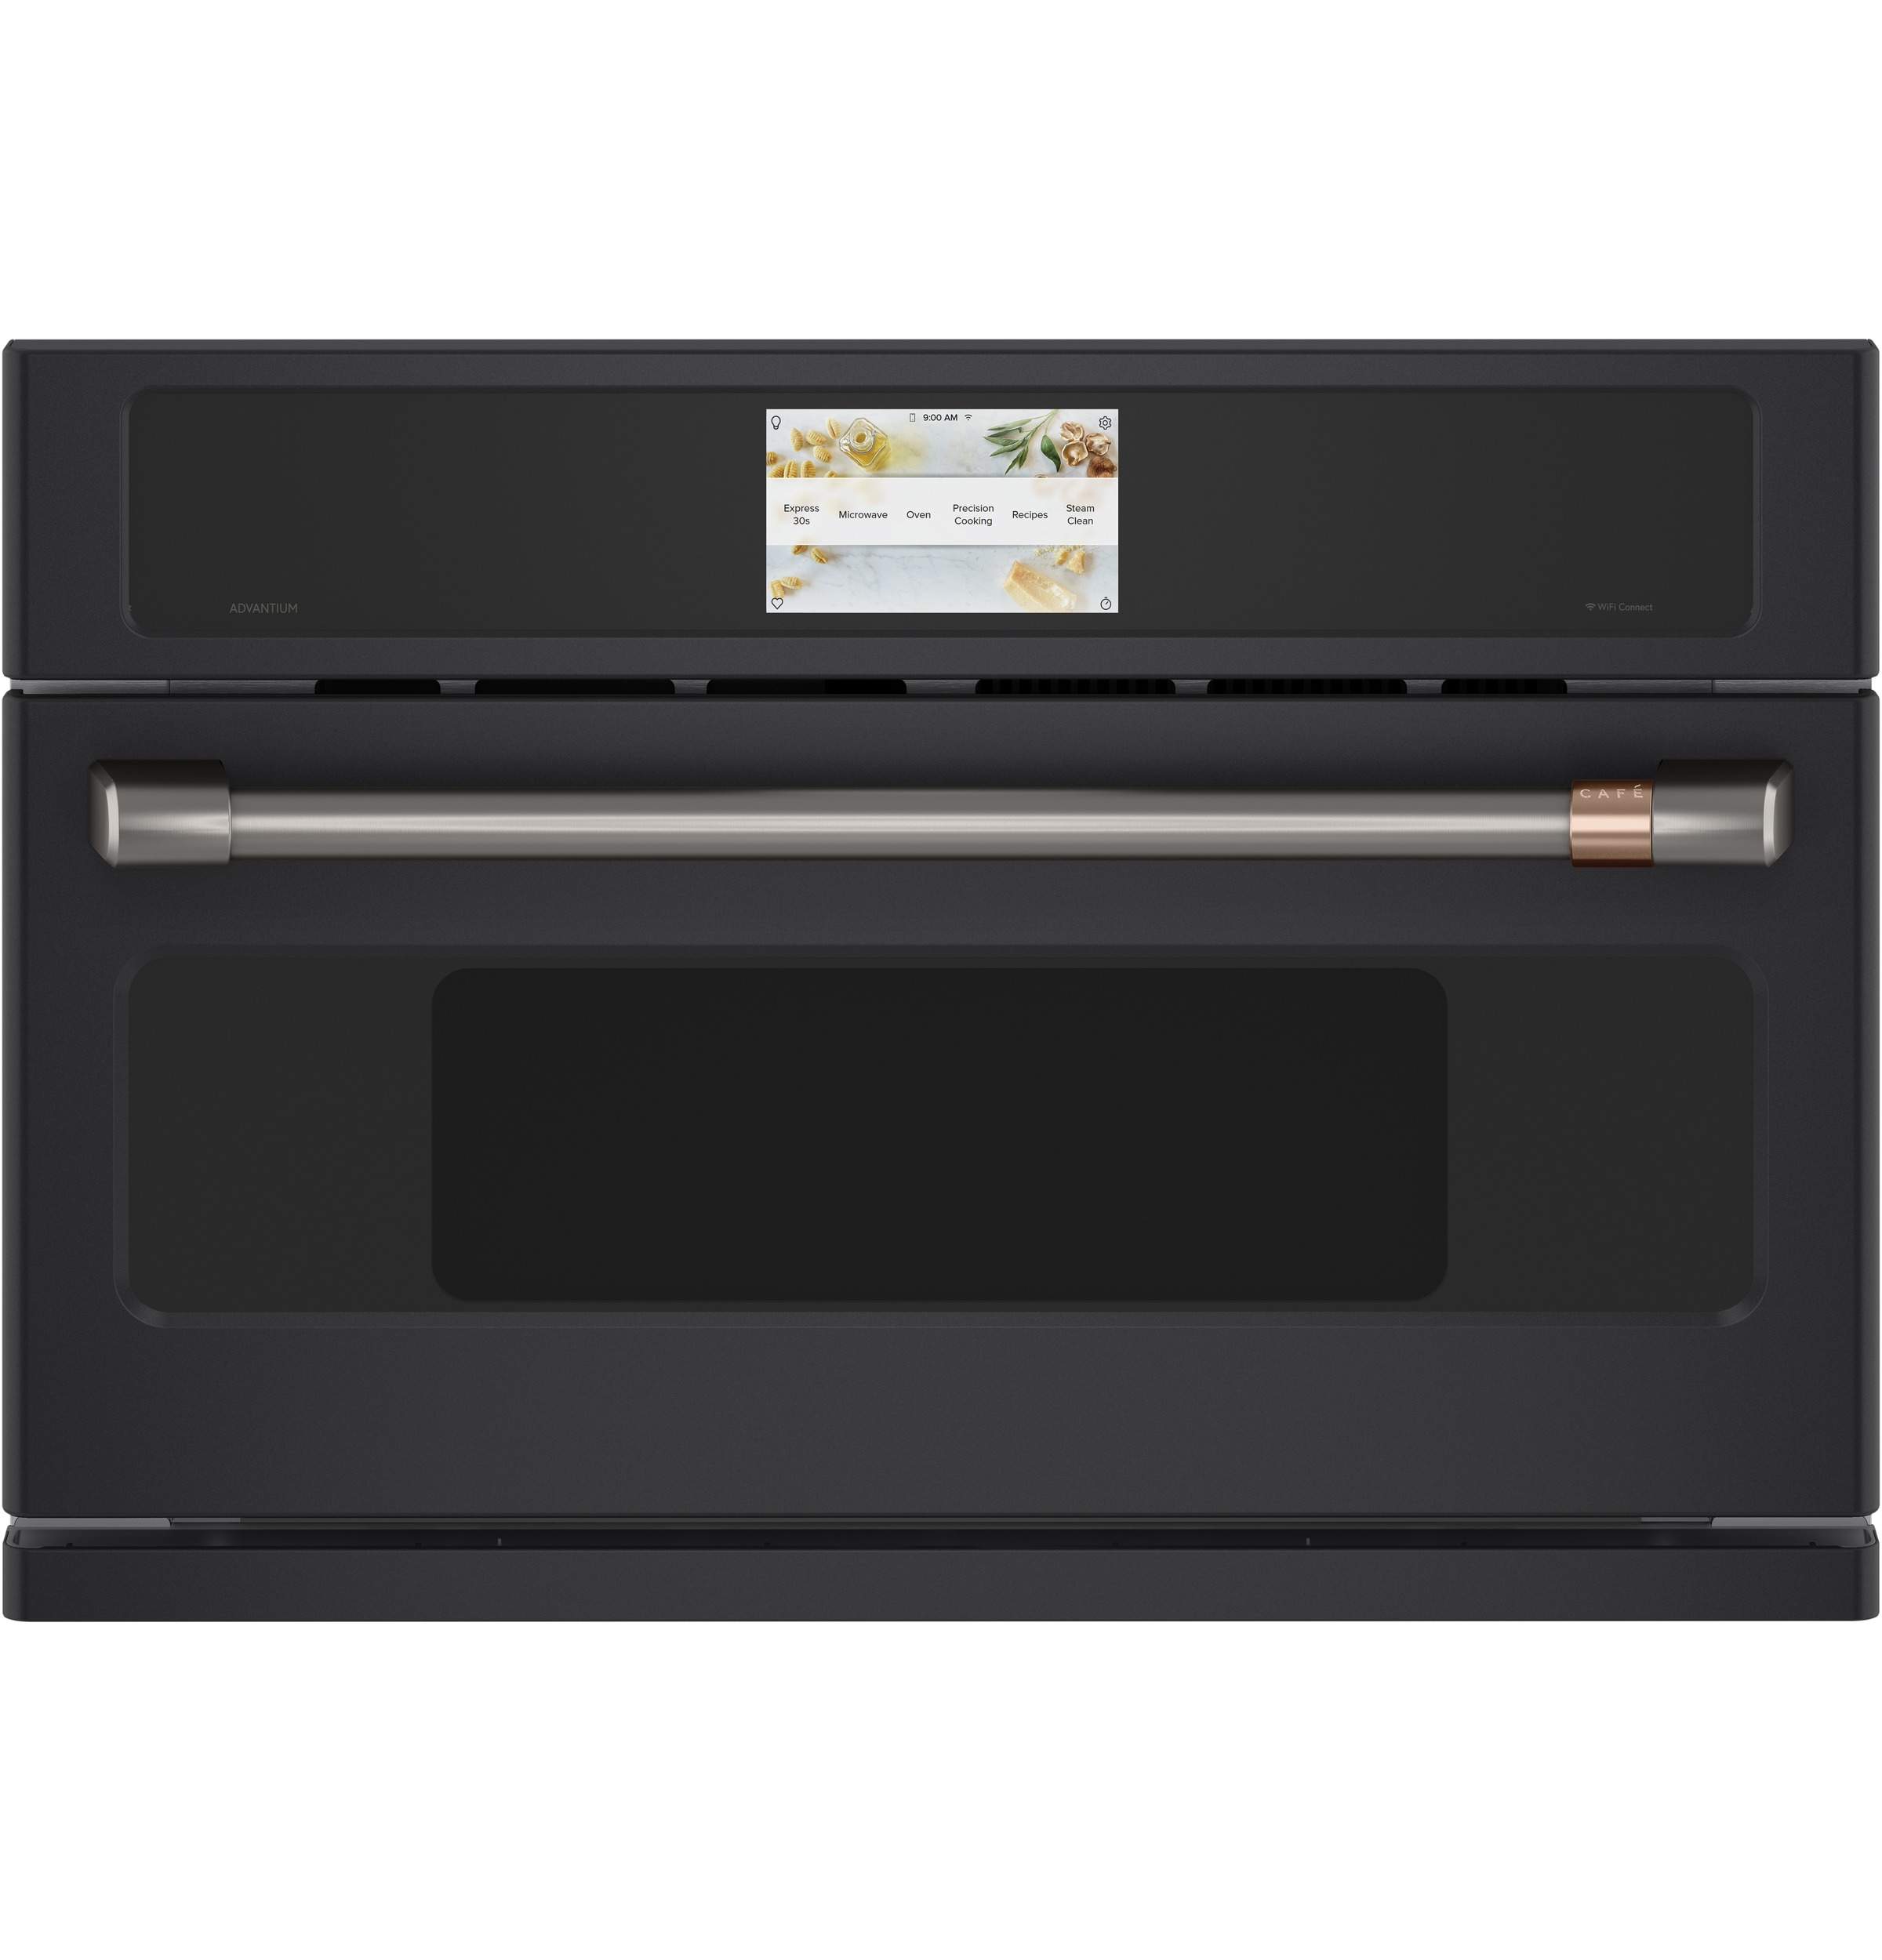 "Cafe Café™ 30"" Smart Five in One Wall Oven with 240V Advantium® Technology"